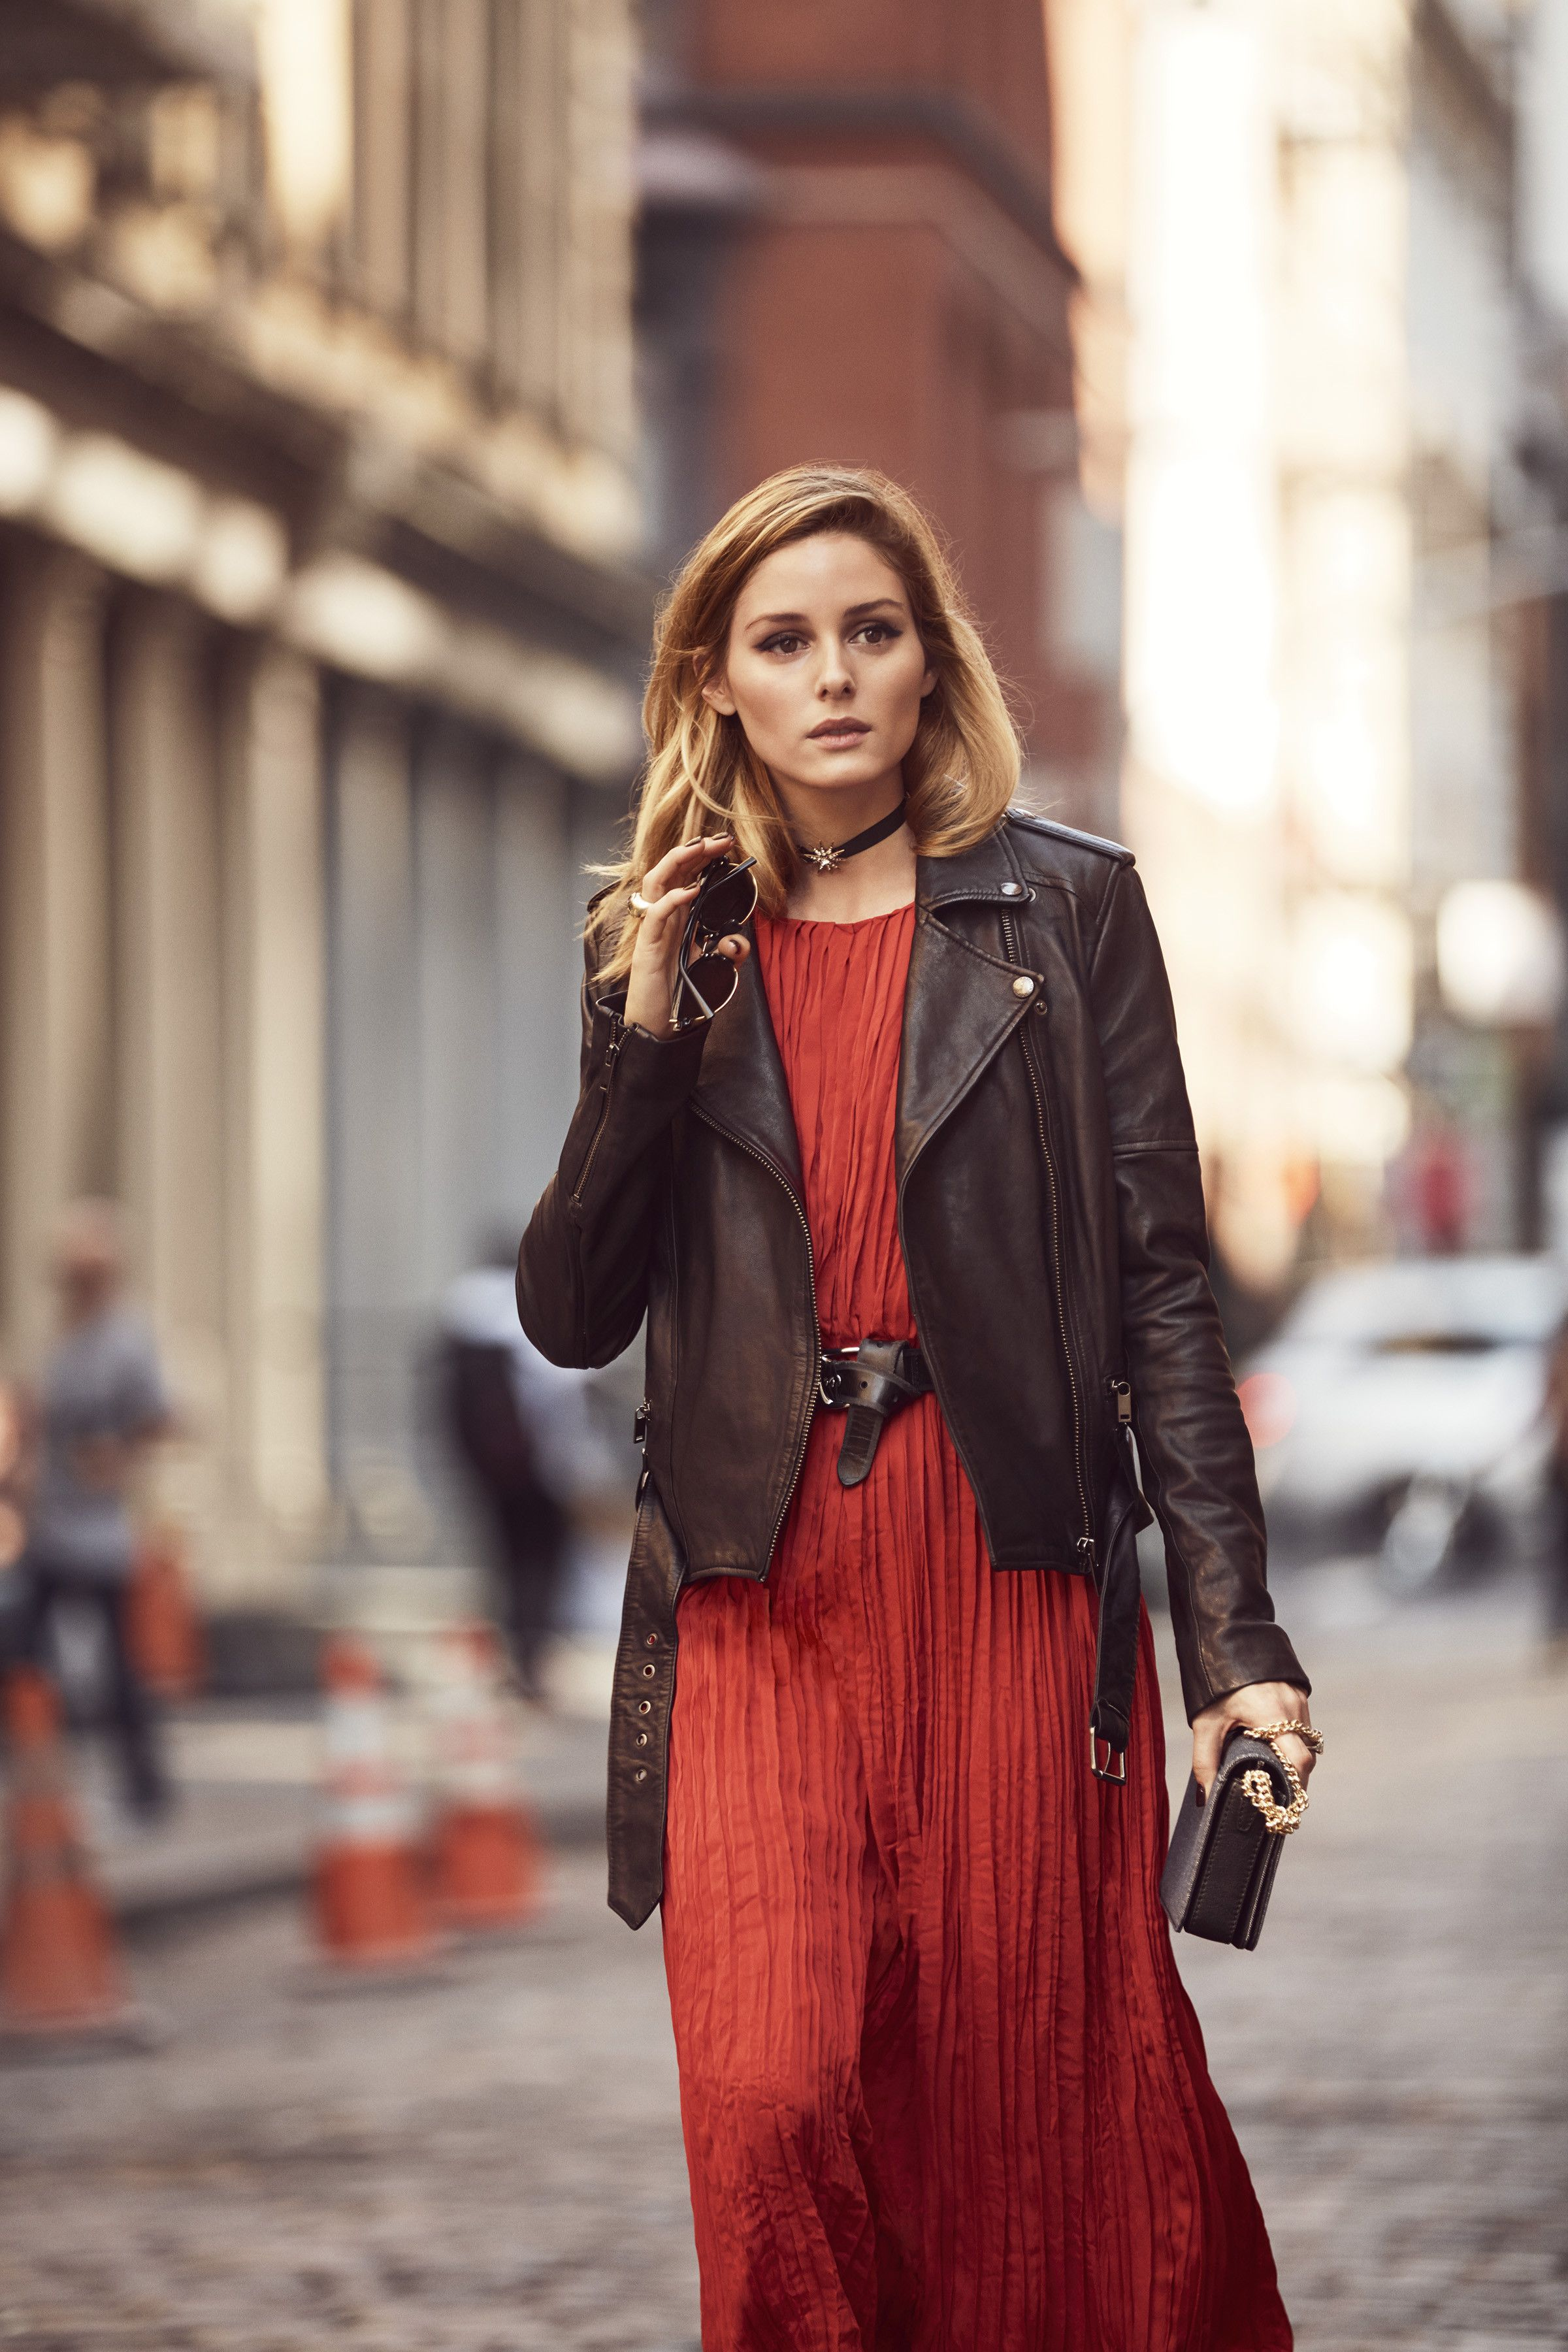 271e5566e972 Olivia Palermo and Banana Republic announce some major news  They re  launching a capsule collection.